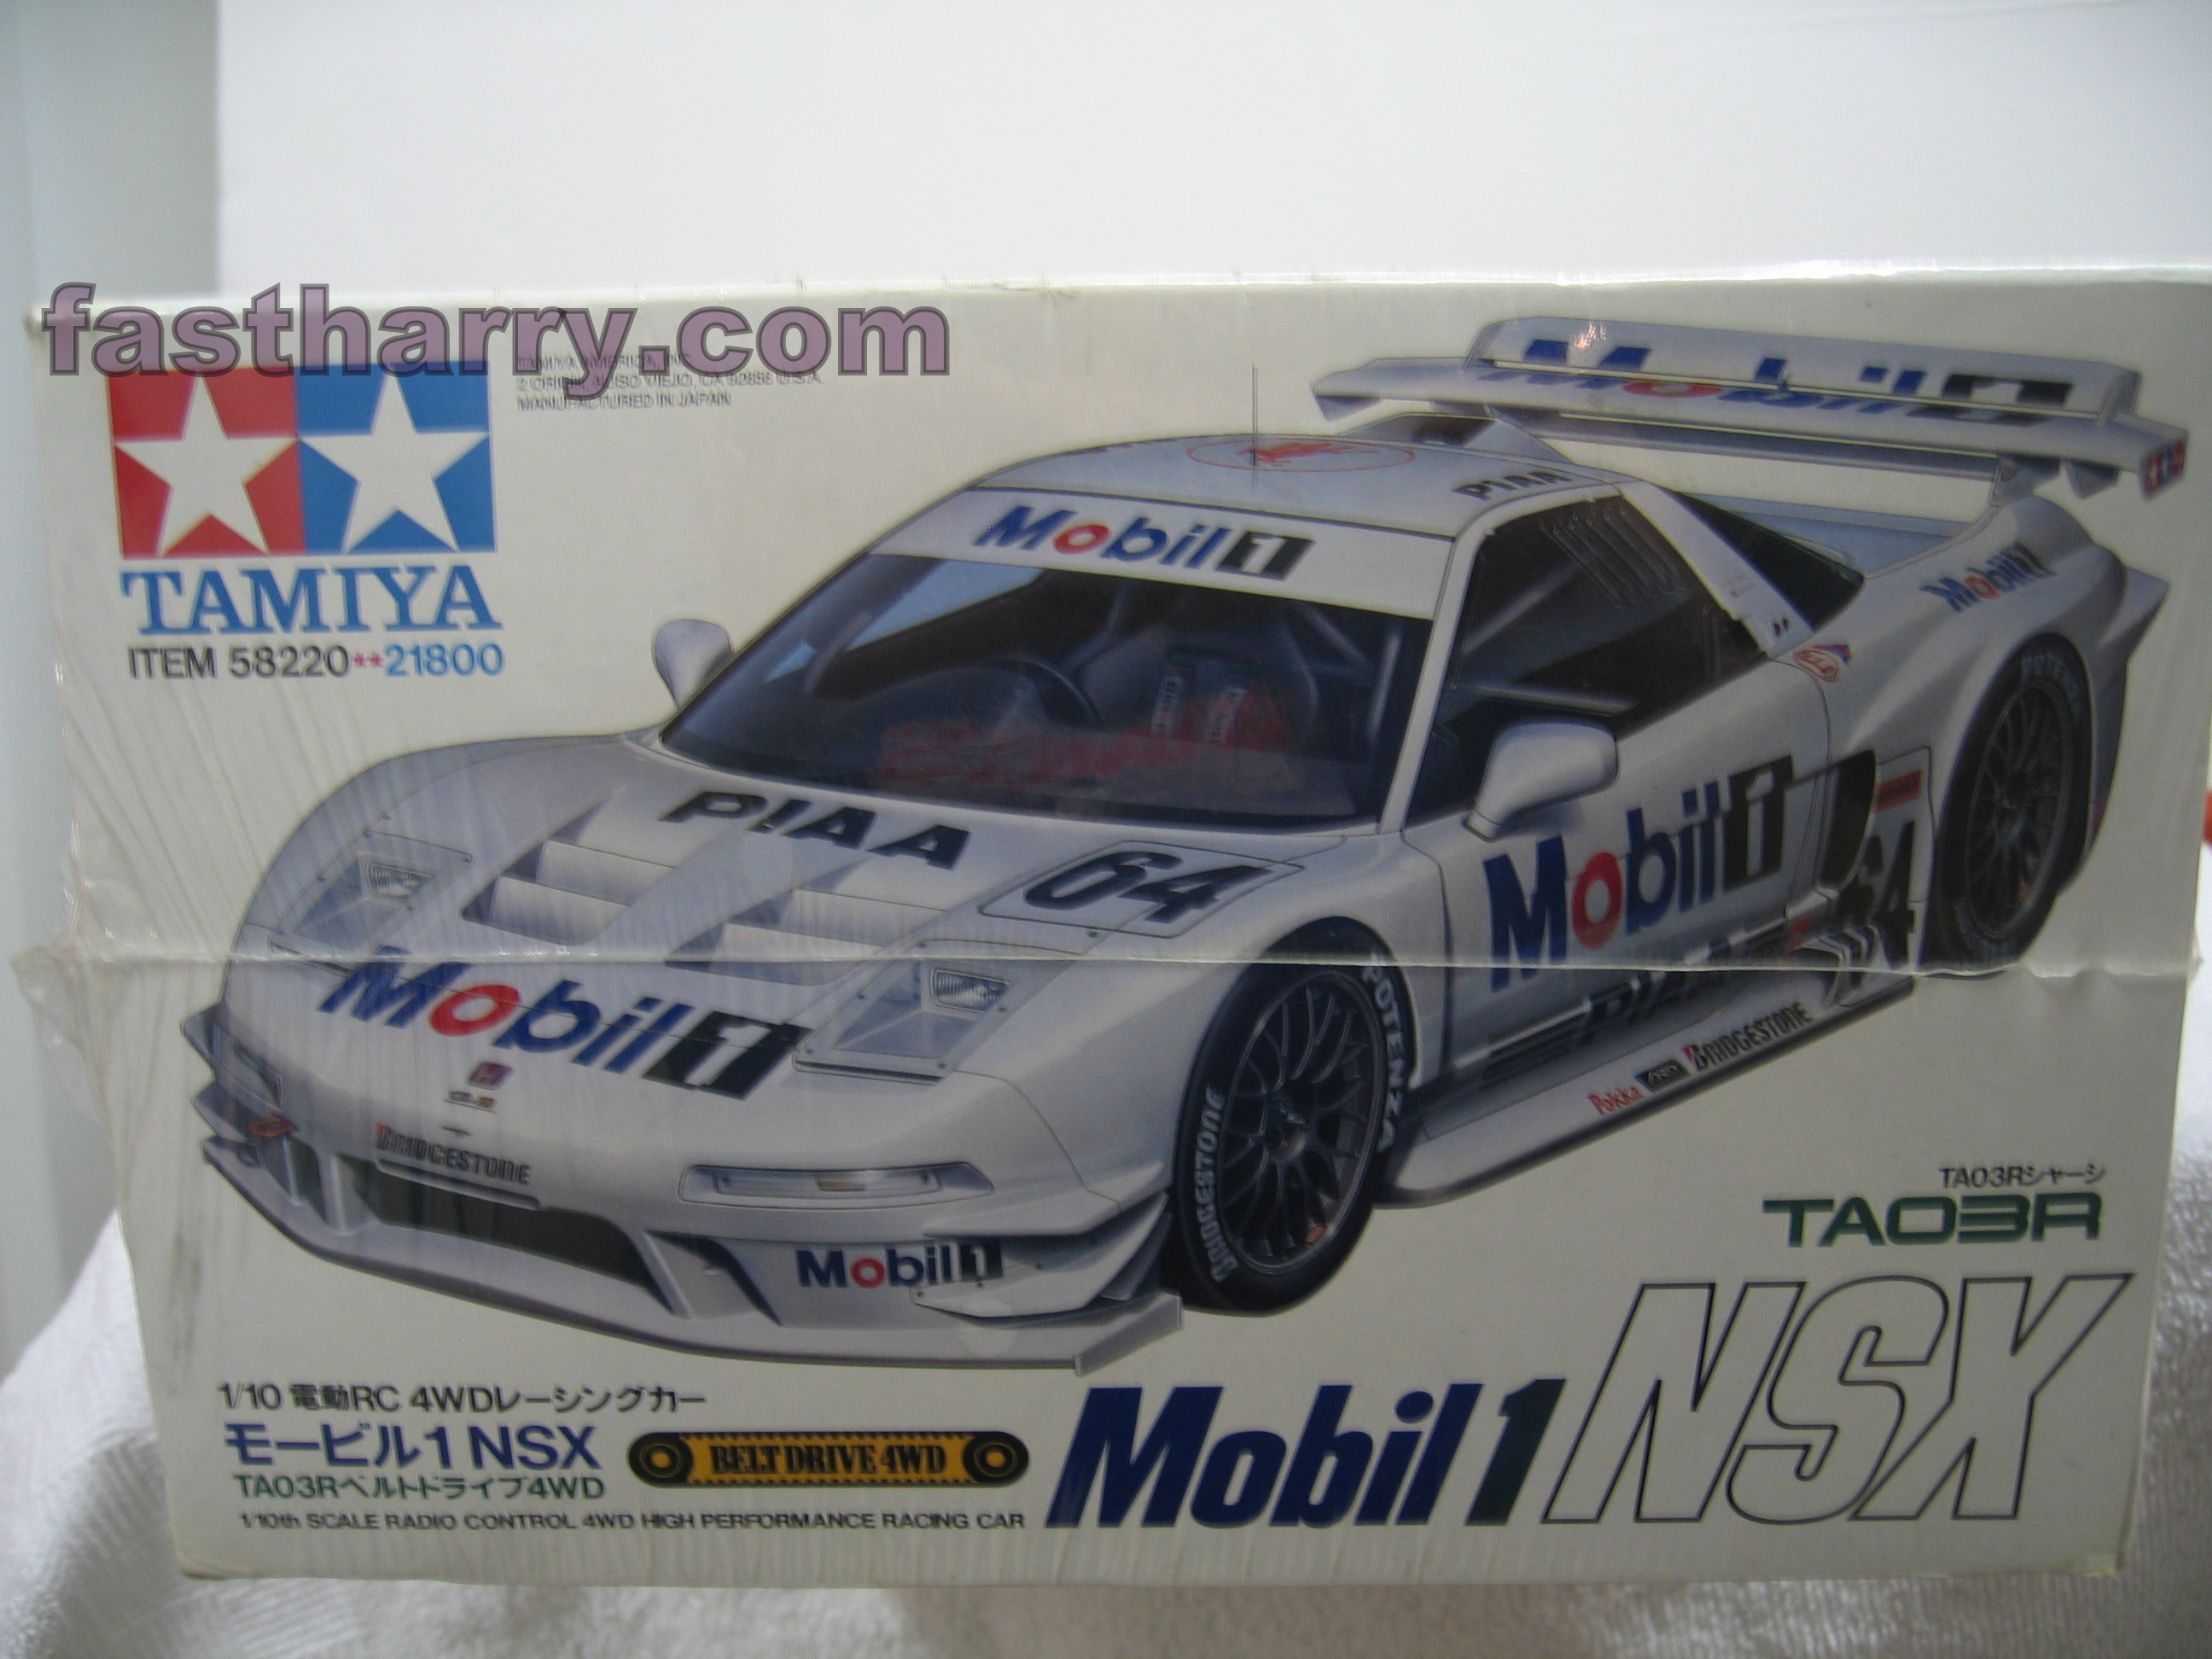 vintage tamiya mobil one acura nsx limited edition #58220 fastharry